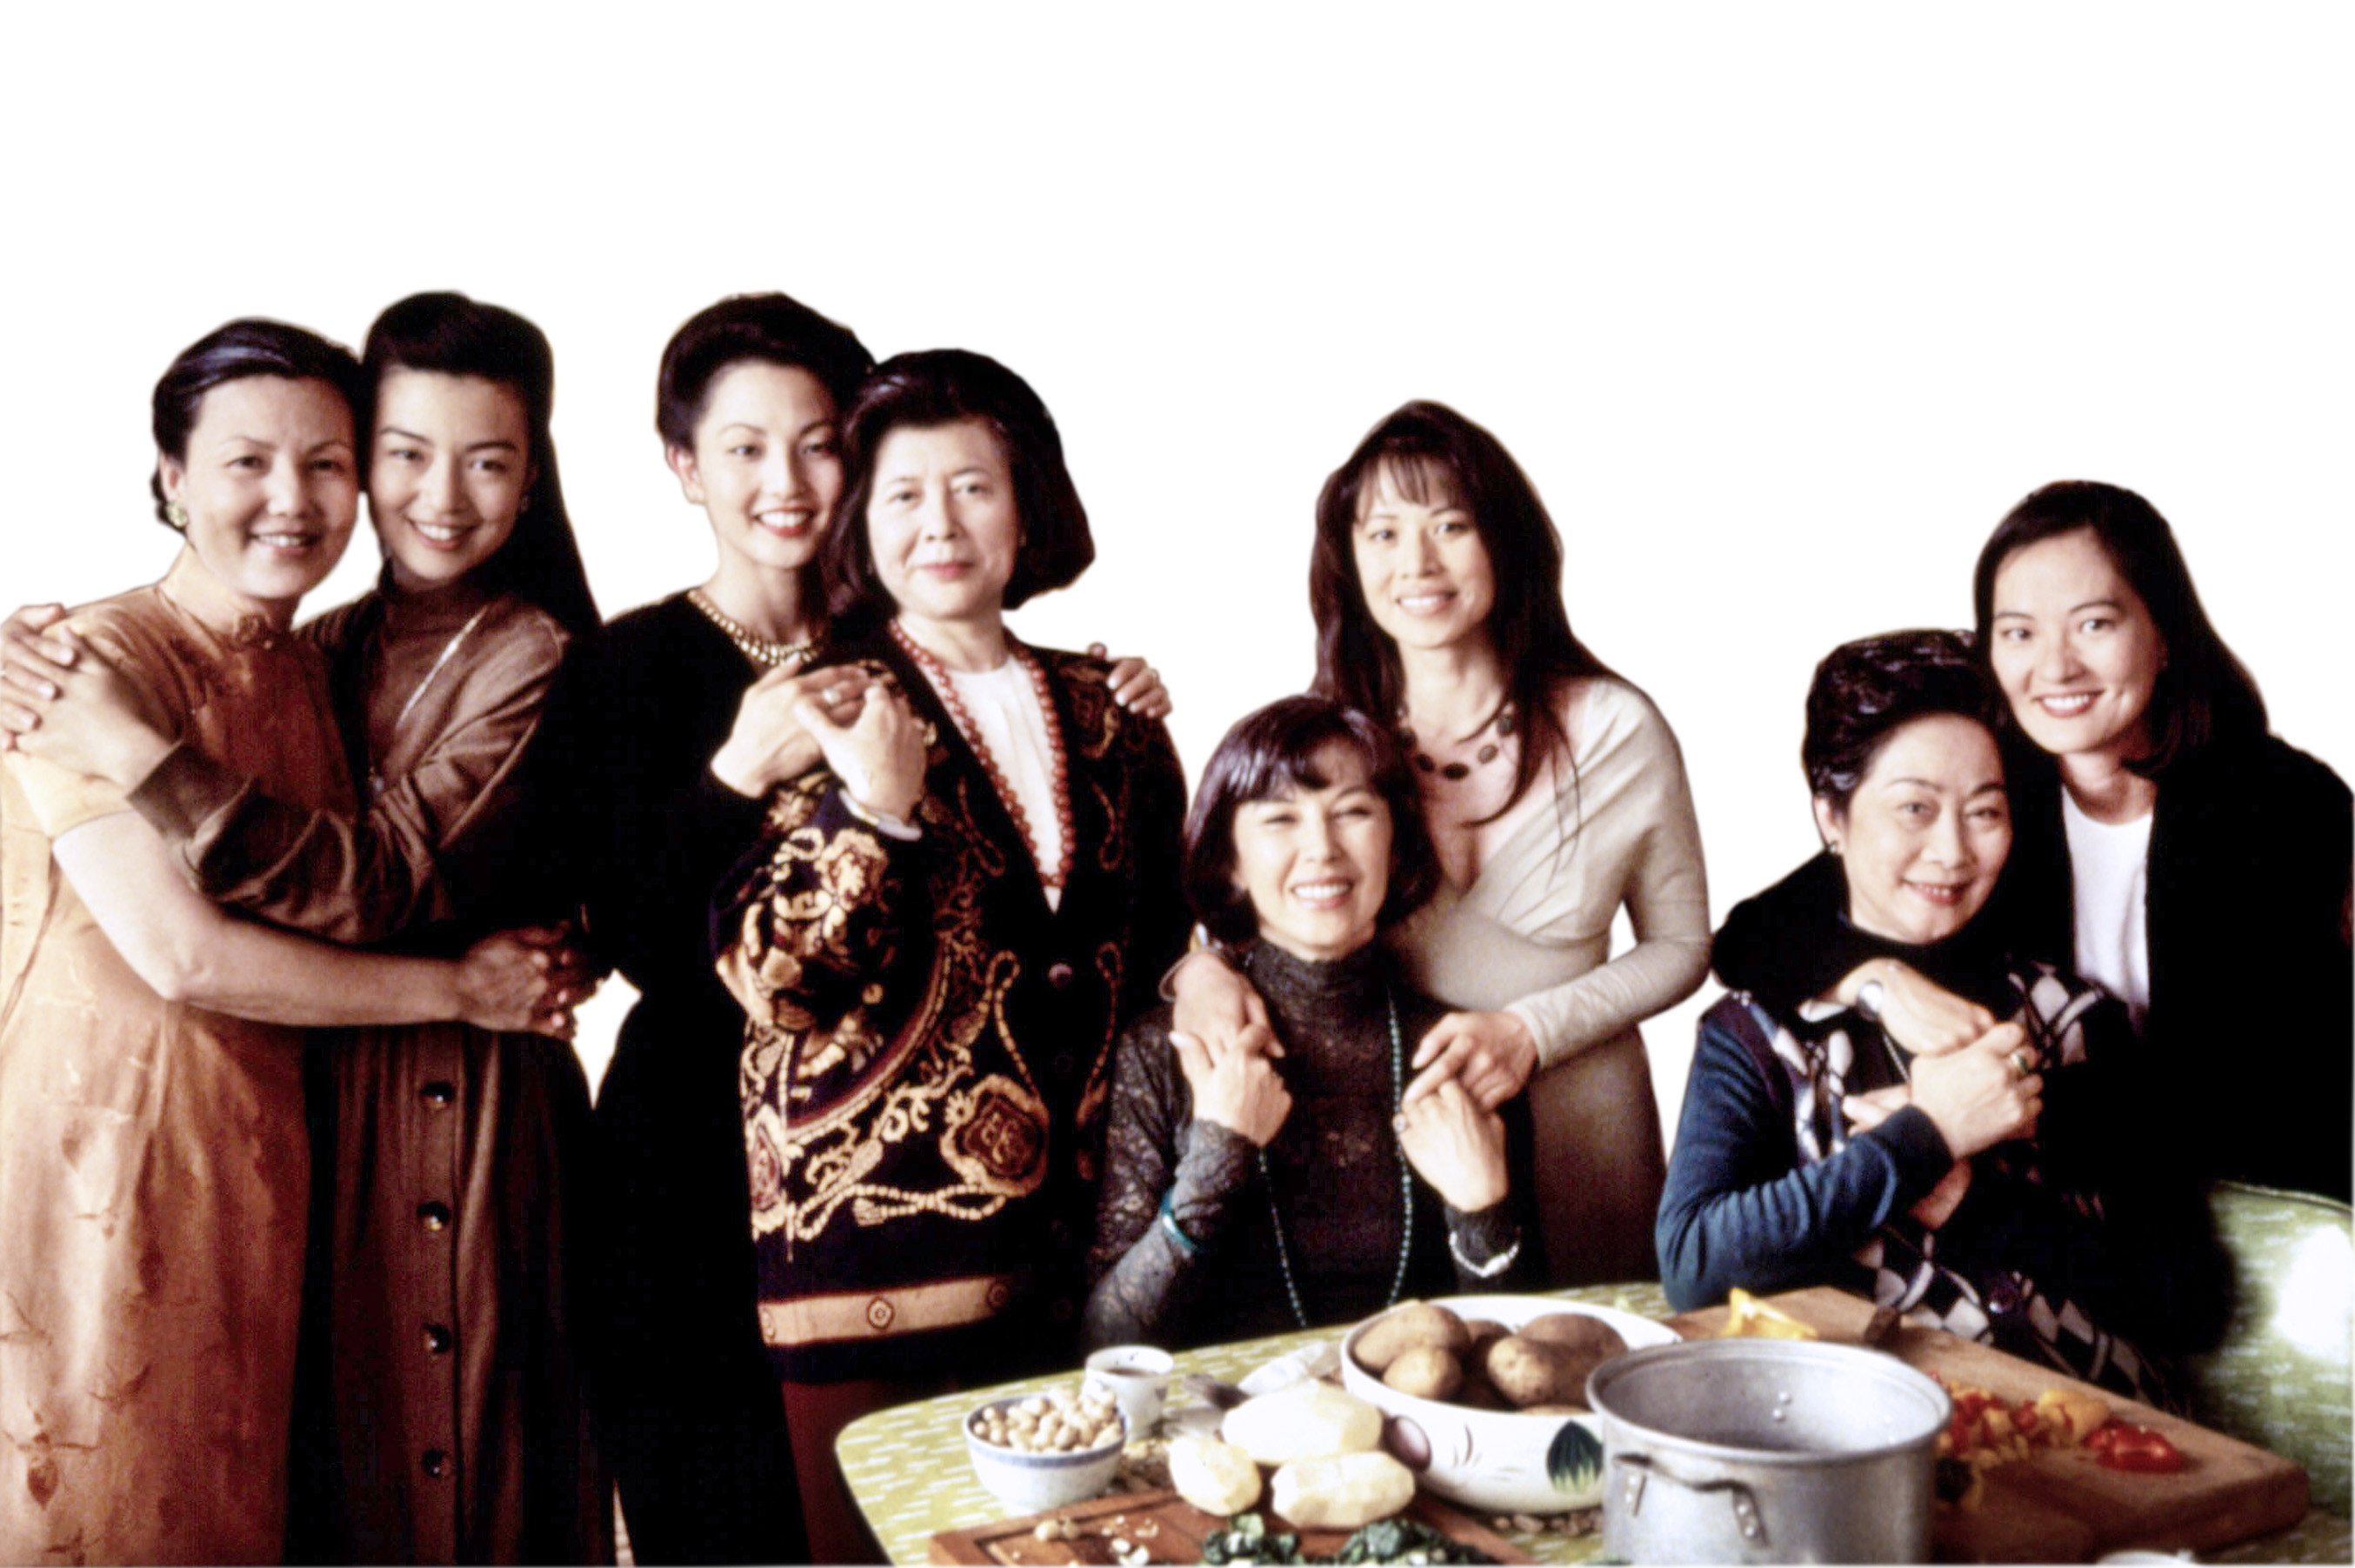 joy luck club theme essay Mother-daughter relationships in amy tan's joy luck club in the joy luck club, the author amy tan, focuses on mother-daughter relationships she examines the lives of four women who emigrated from china, and the lives of four of their american-born daughters.